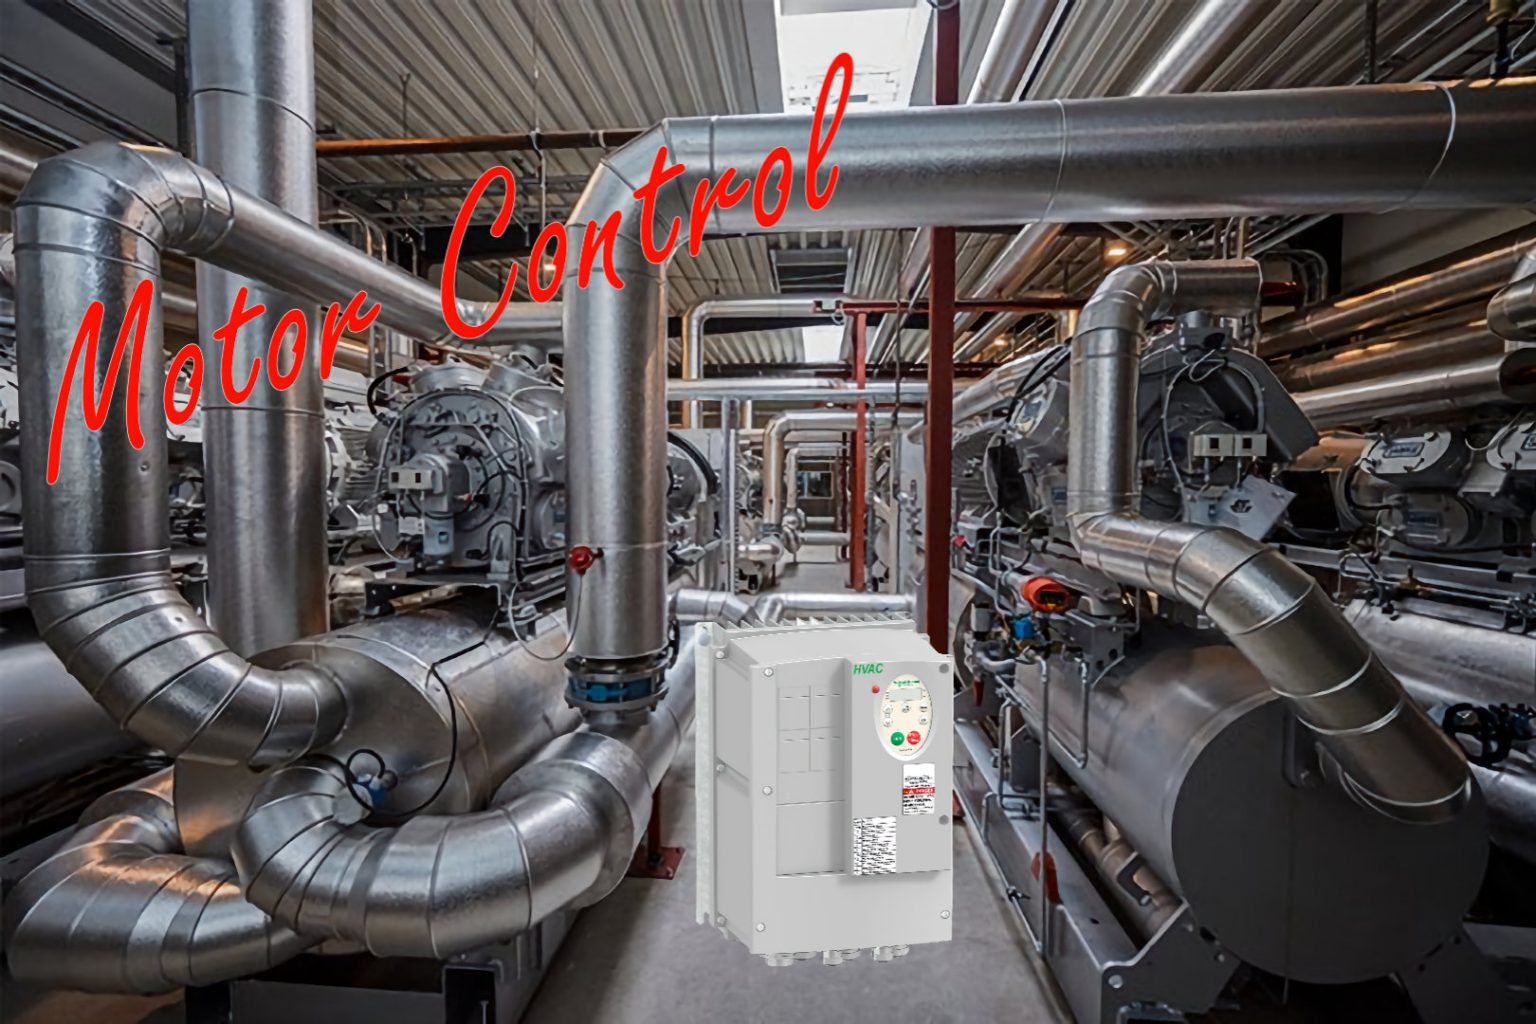 microngroup-industrial-heat-pumps-refrigeration-motor-control-variable-speed-drives